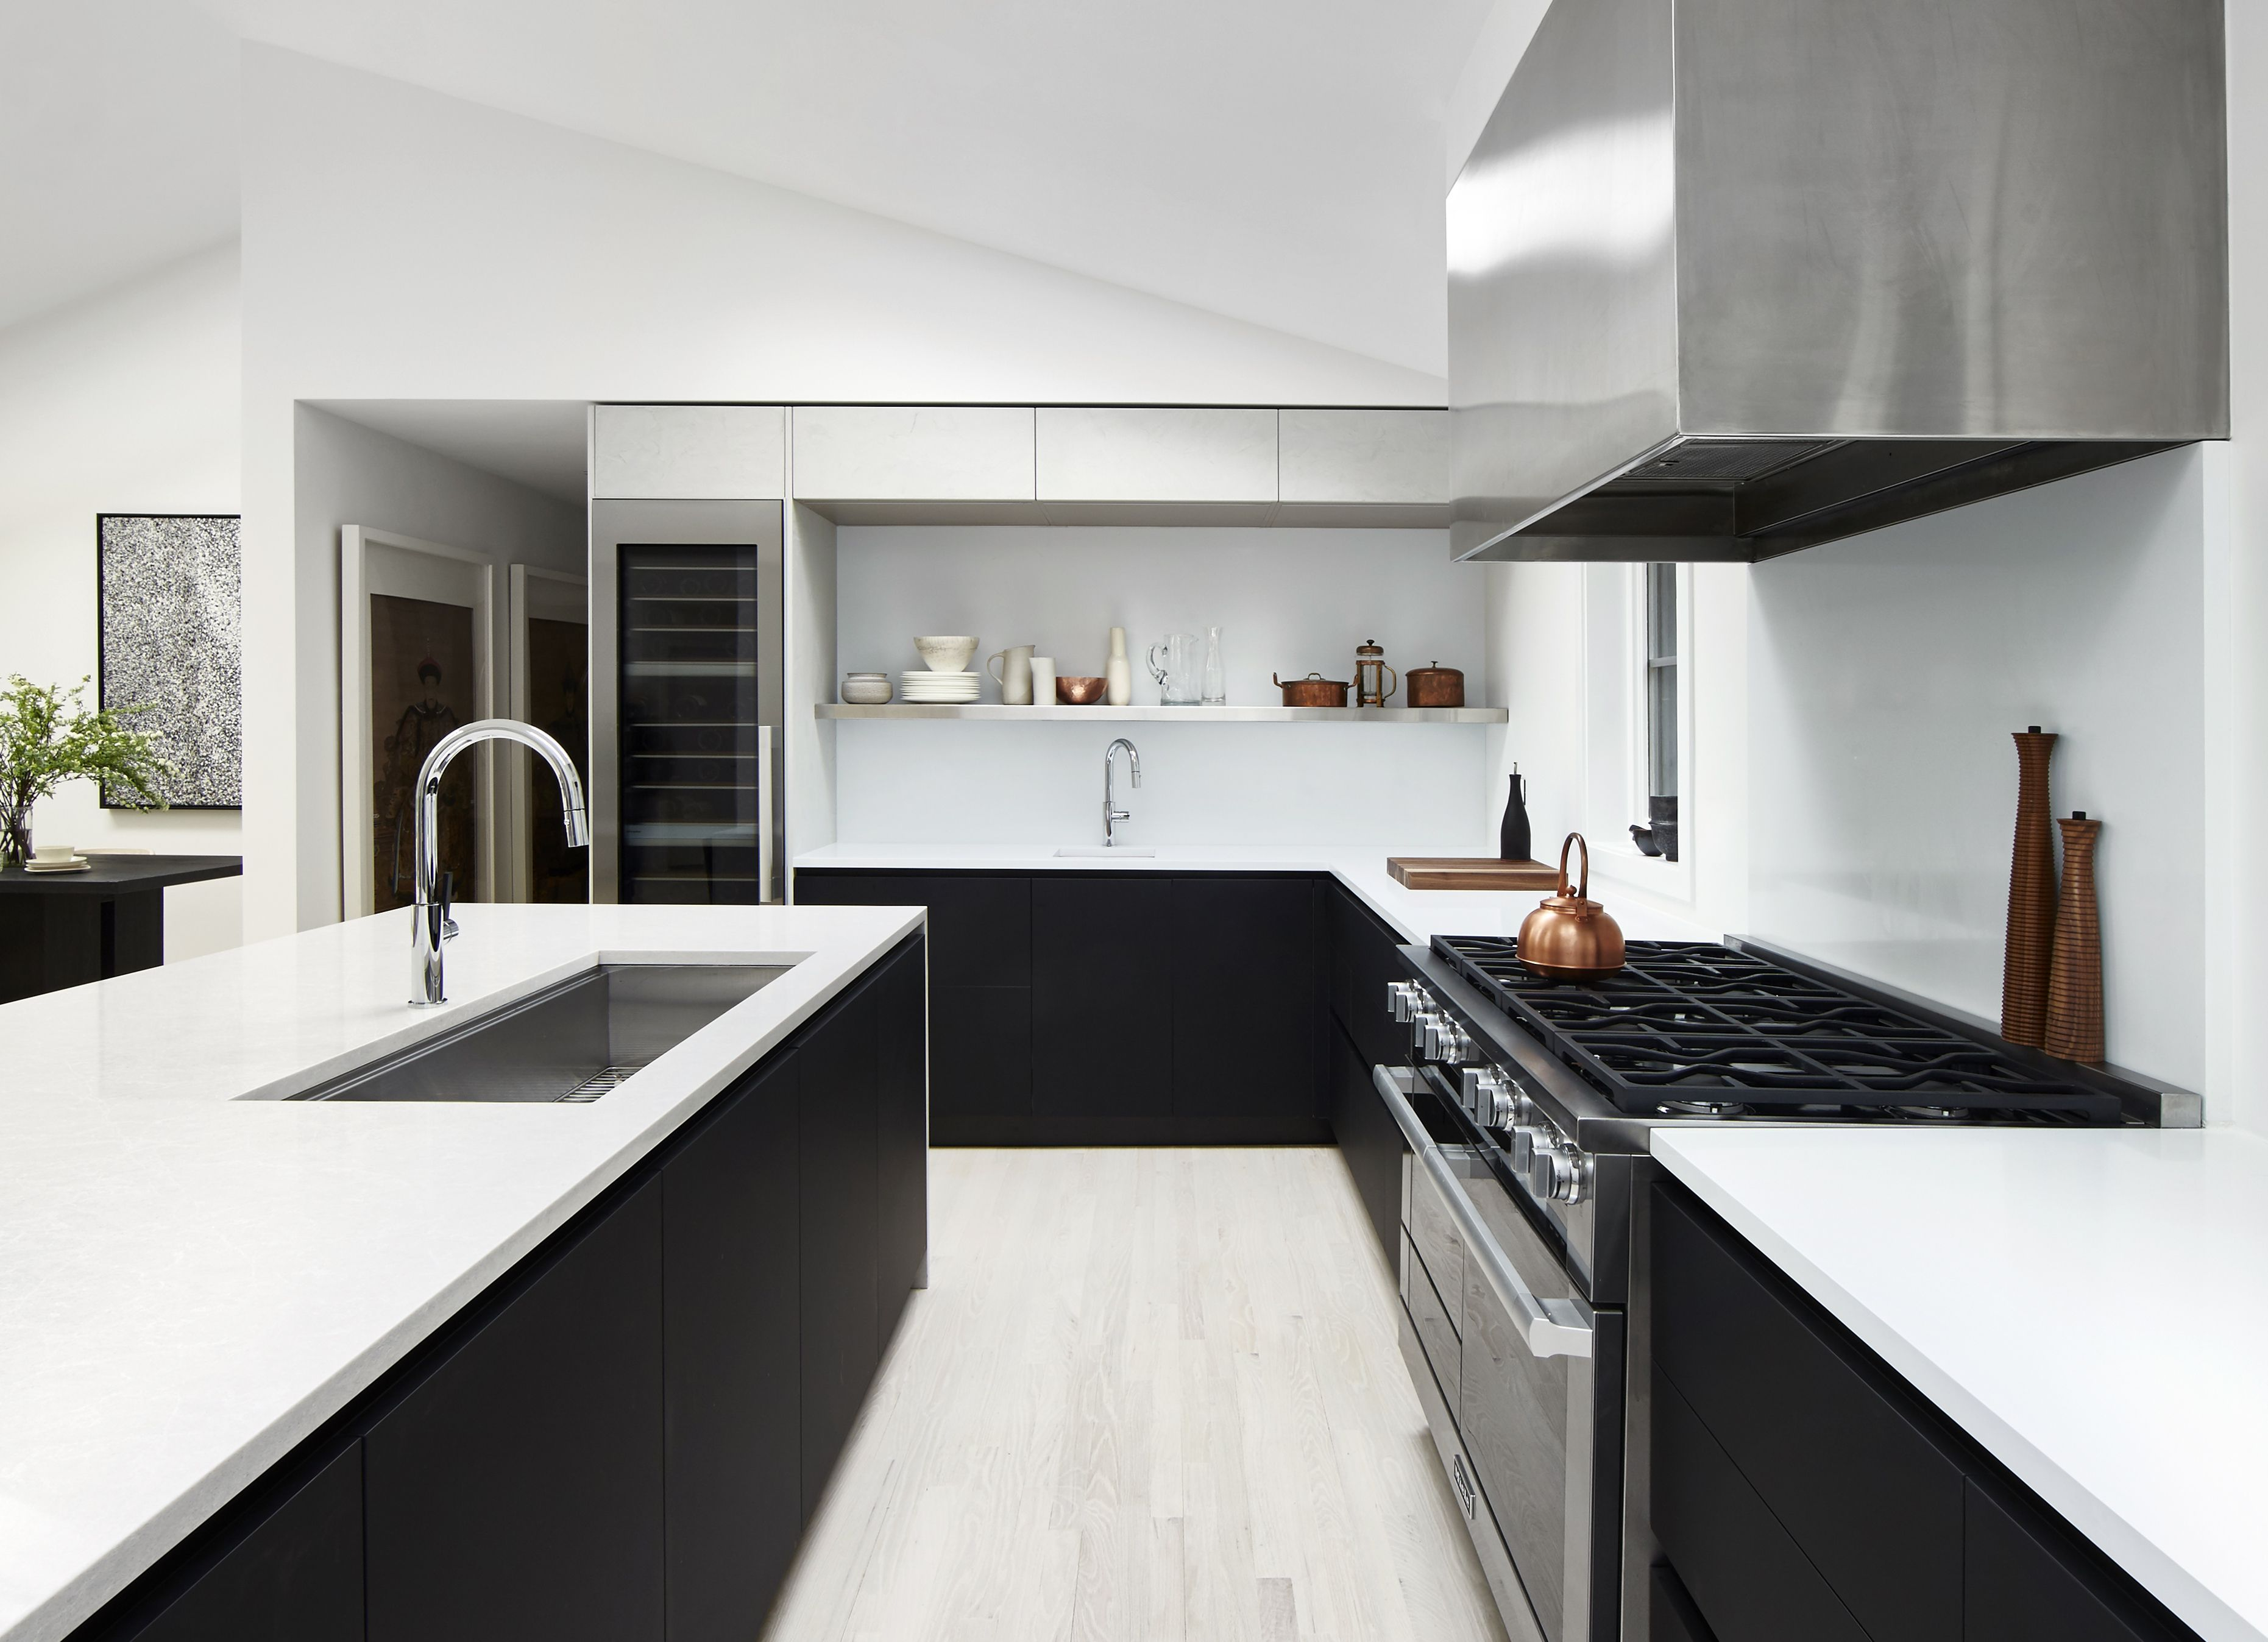 Minimal Modern Kitchen In Black And White Photo By Jacob